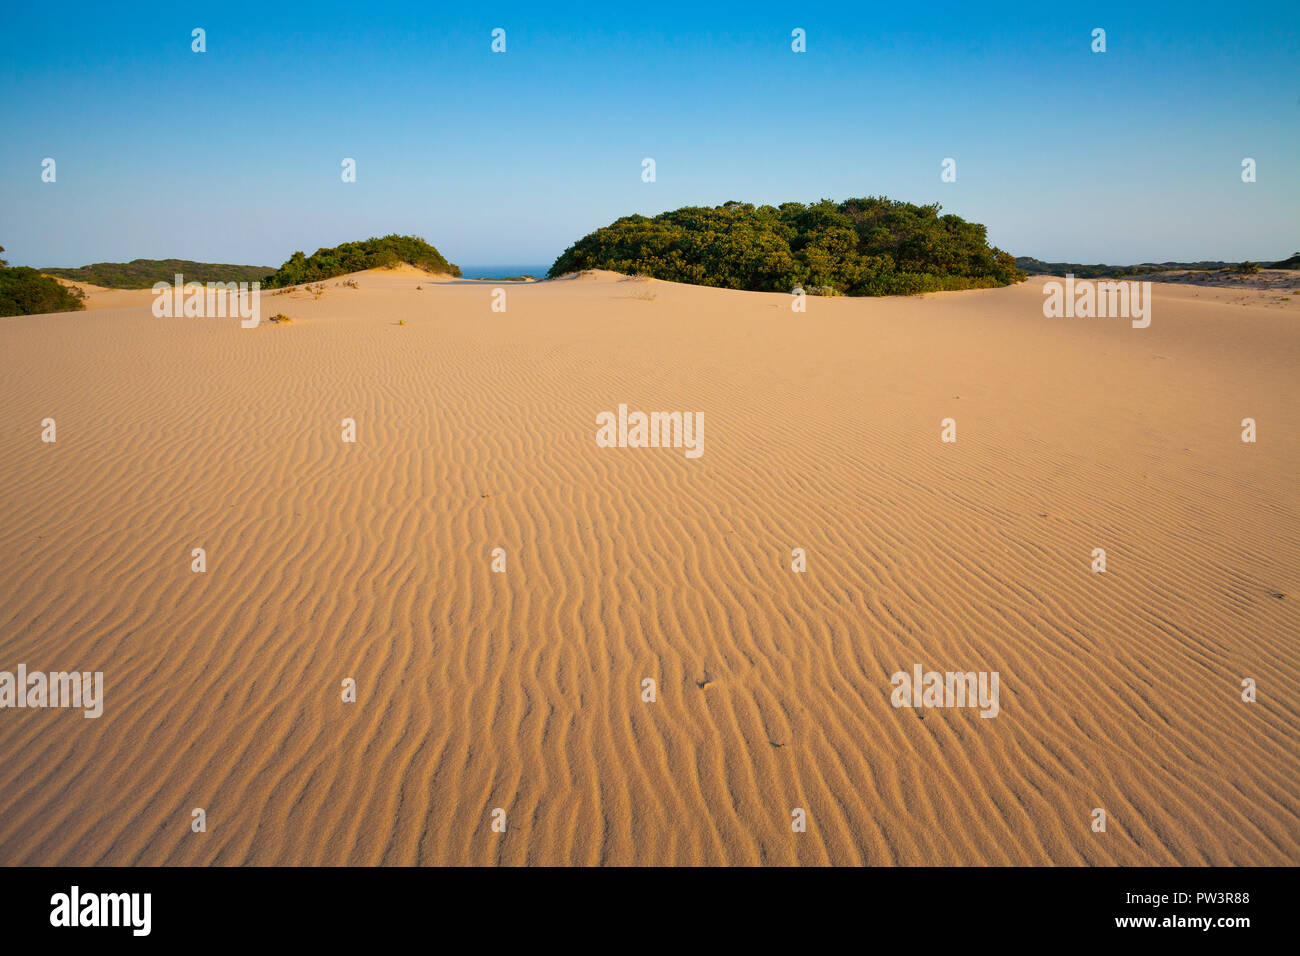 DUNES DE SABLE CÔTIÈRES, Dovela, Inharrime, au Mozambique. Photo Stock